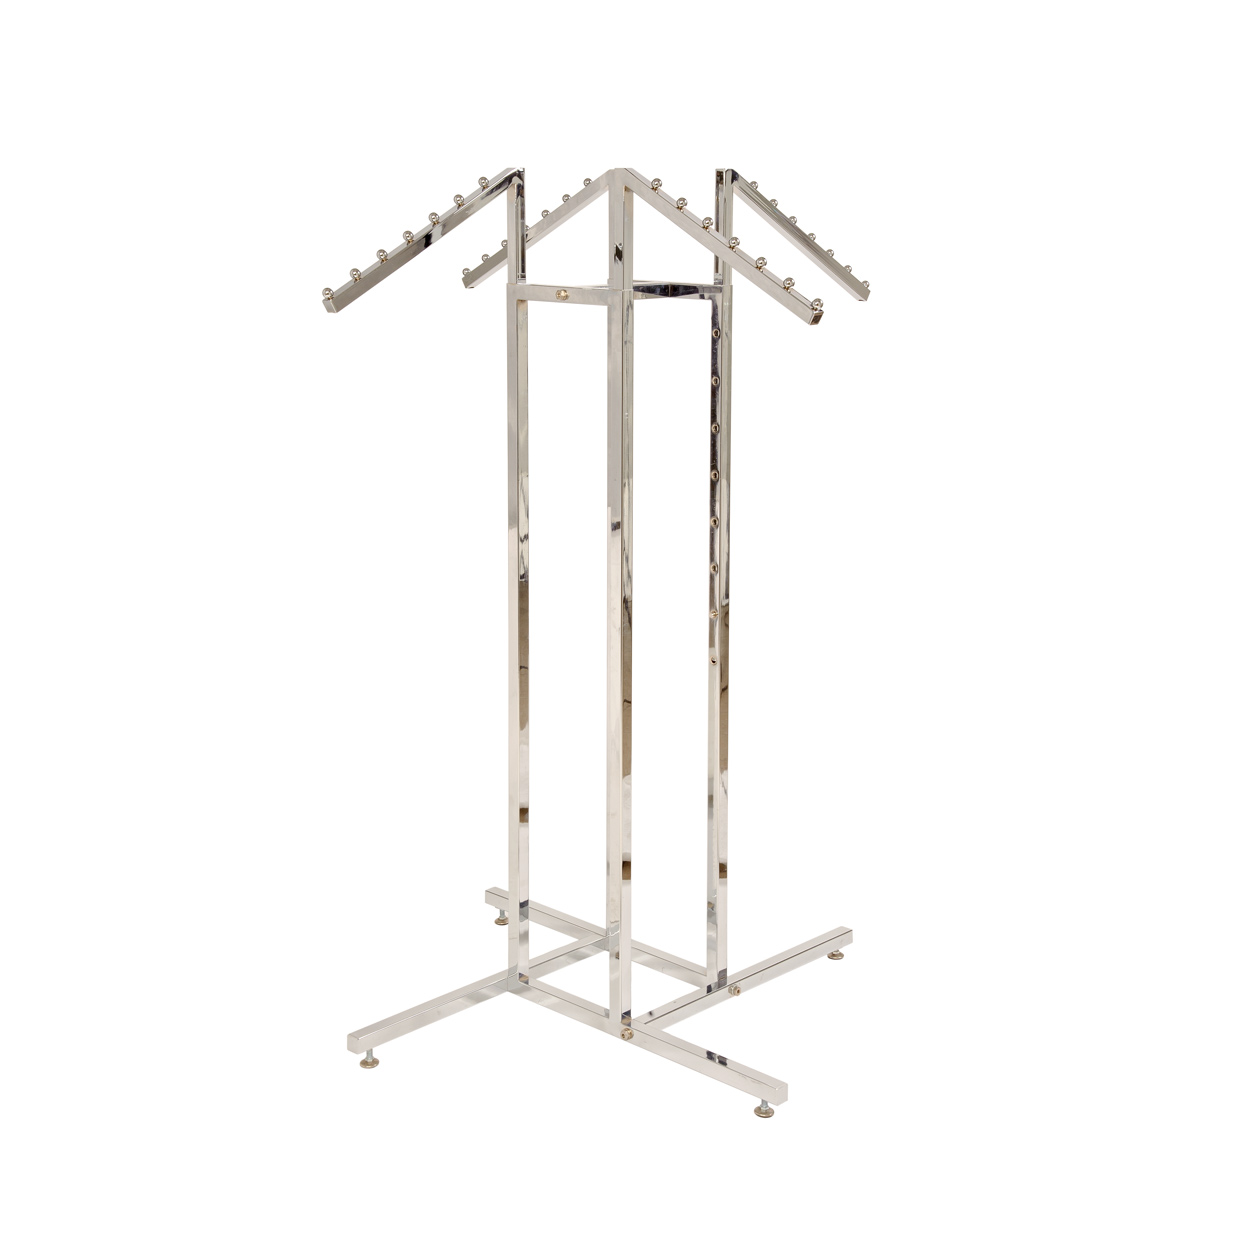 4 Way Clothes Rack Kit. Height 1190mm x Width890mm x Depth 890mm x Length (Straight Arms) 405mm